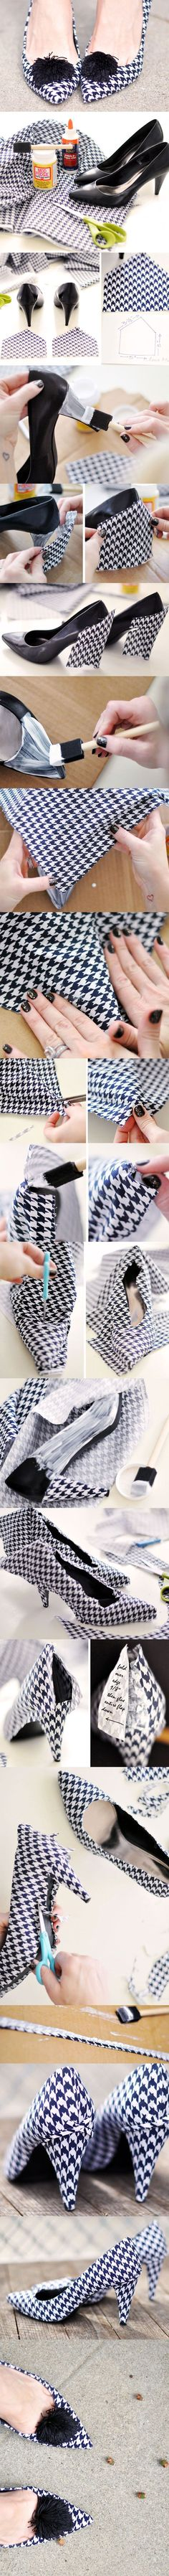 DIY: Designer Shoes Project  OMG!  I love this idea!